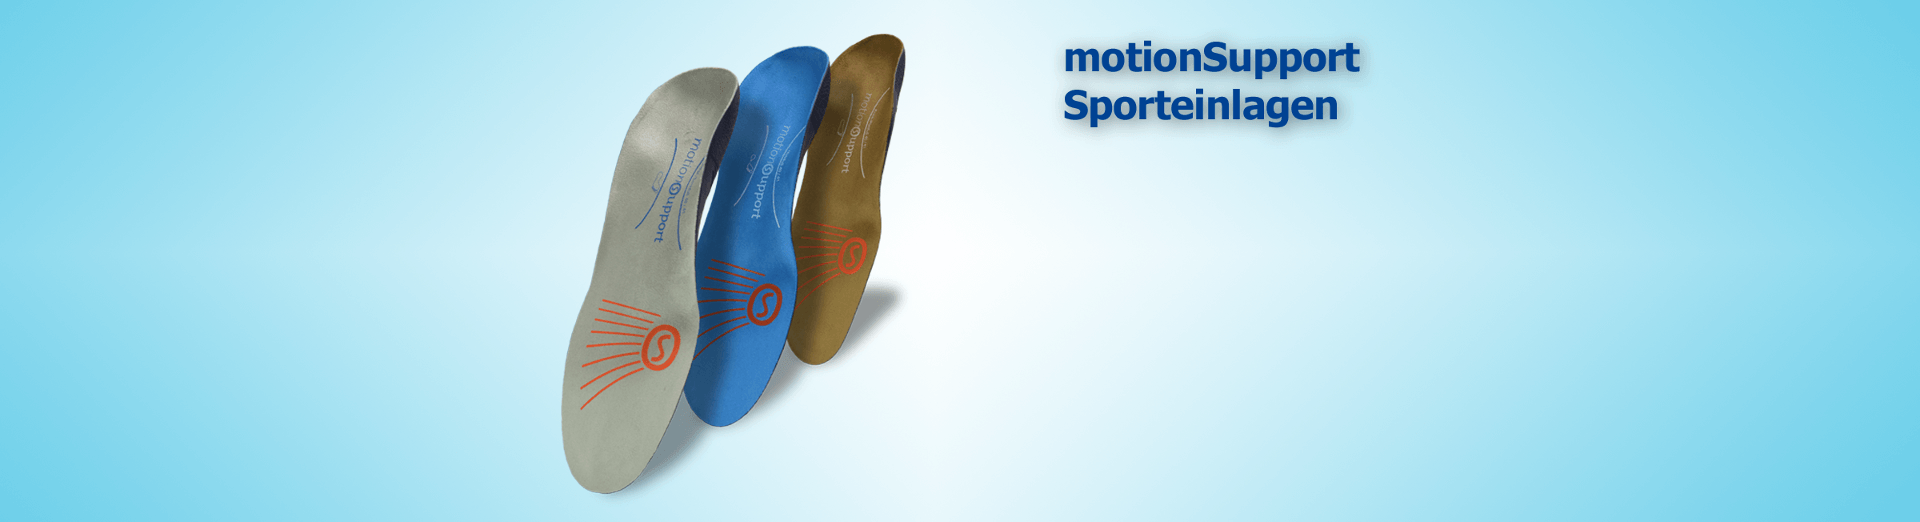 MotionSupport